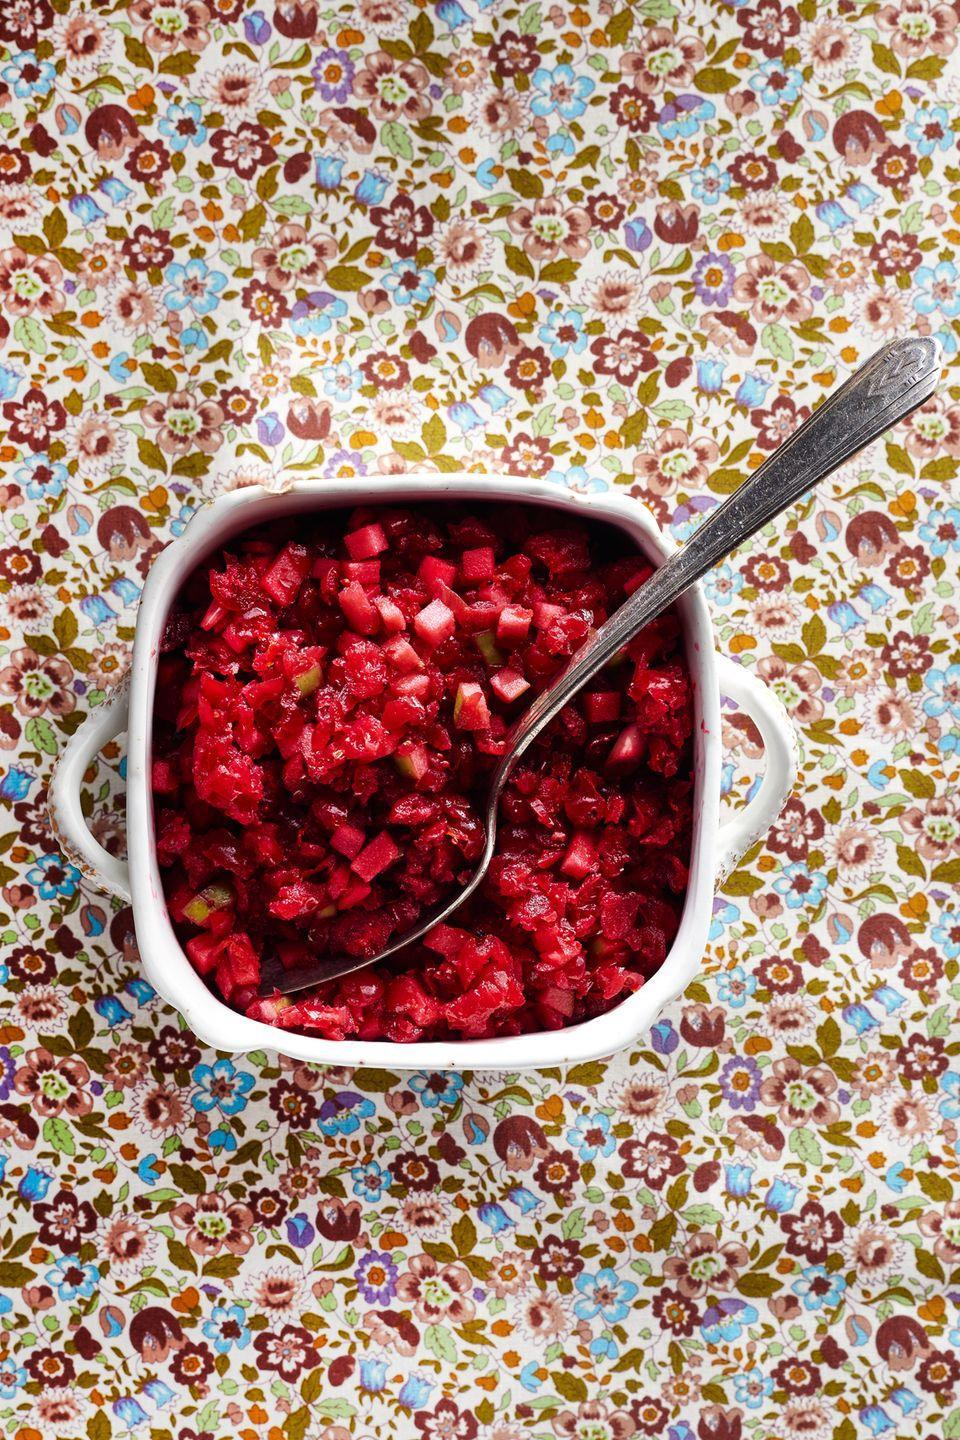 "<p>This cranberry relish gets a zesty kick from scallions and Granny Smith apples.</p><p><strong><a href=""https://www.countryliving.com/food-drinks/recipes/a36665/fresh-cranberry-apple-relish/"" rel=""nofollow noopener"" target=""_blank"" data-ylk=""slk:Get the recipe"" class=""link rapid-noclick-resp"">Get the recipe</a>.</strong></p>"